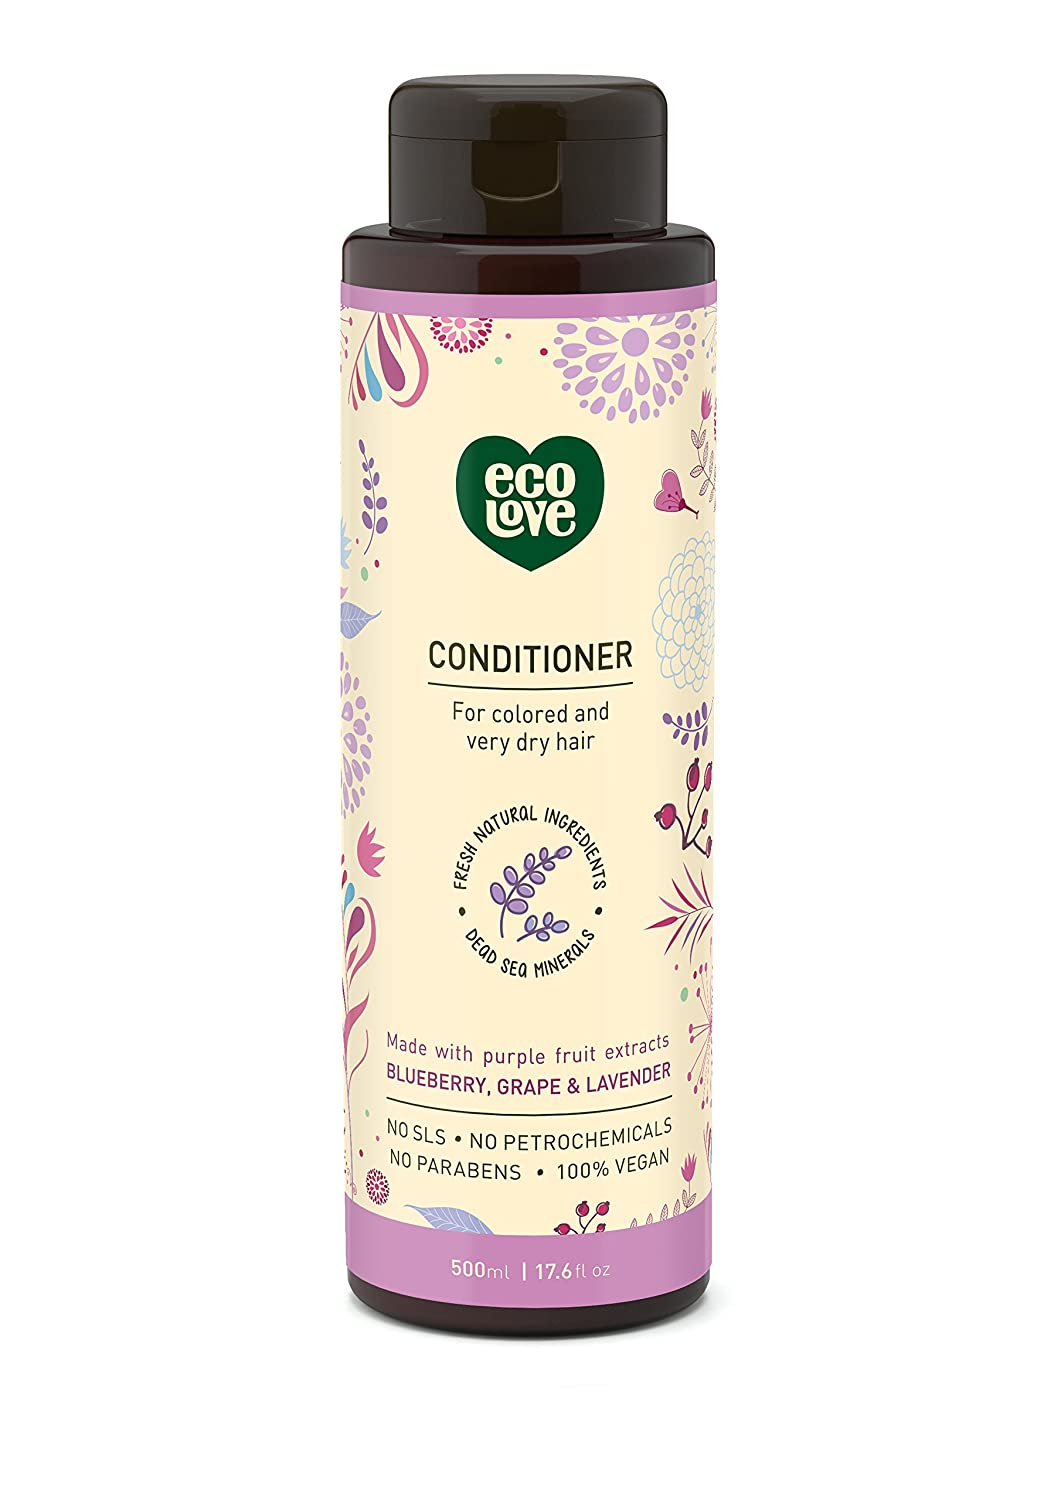 100% Vegan conditioner by ecoLove | 17.6 oz. | Organic blueberry, grape & lavender For colored and very dry hair